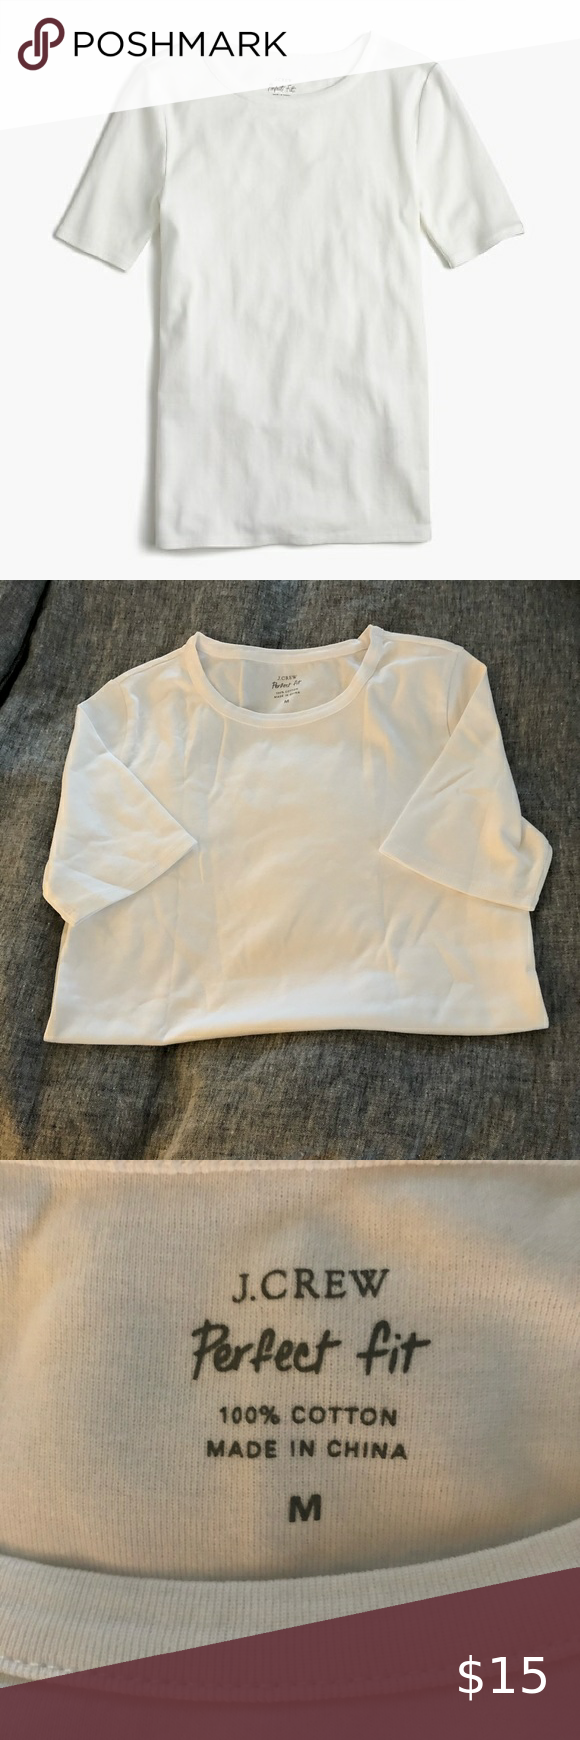 #body #Crew #Fit #fitness body #JCREW #Length #NWOT #Perfect #Slim #Tops #Tshirt